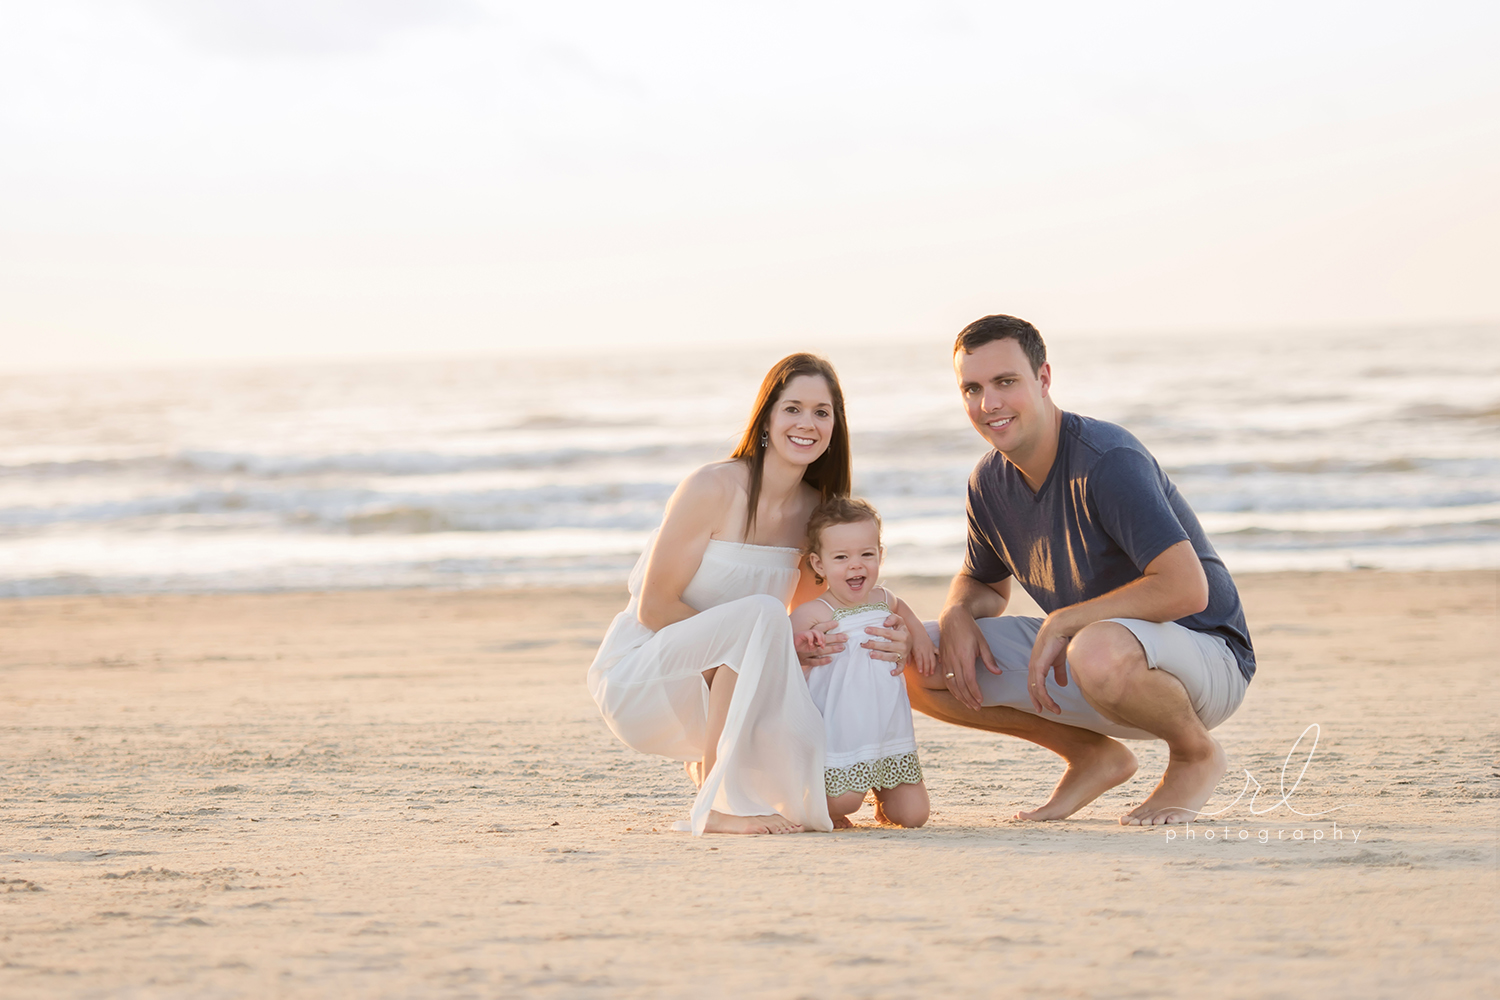 Family Pictures - RL Photography 13.jpg